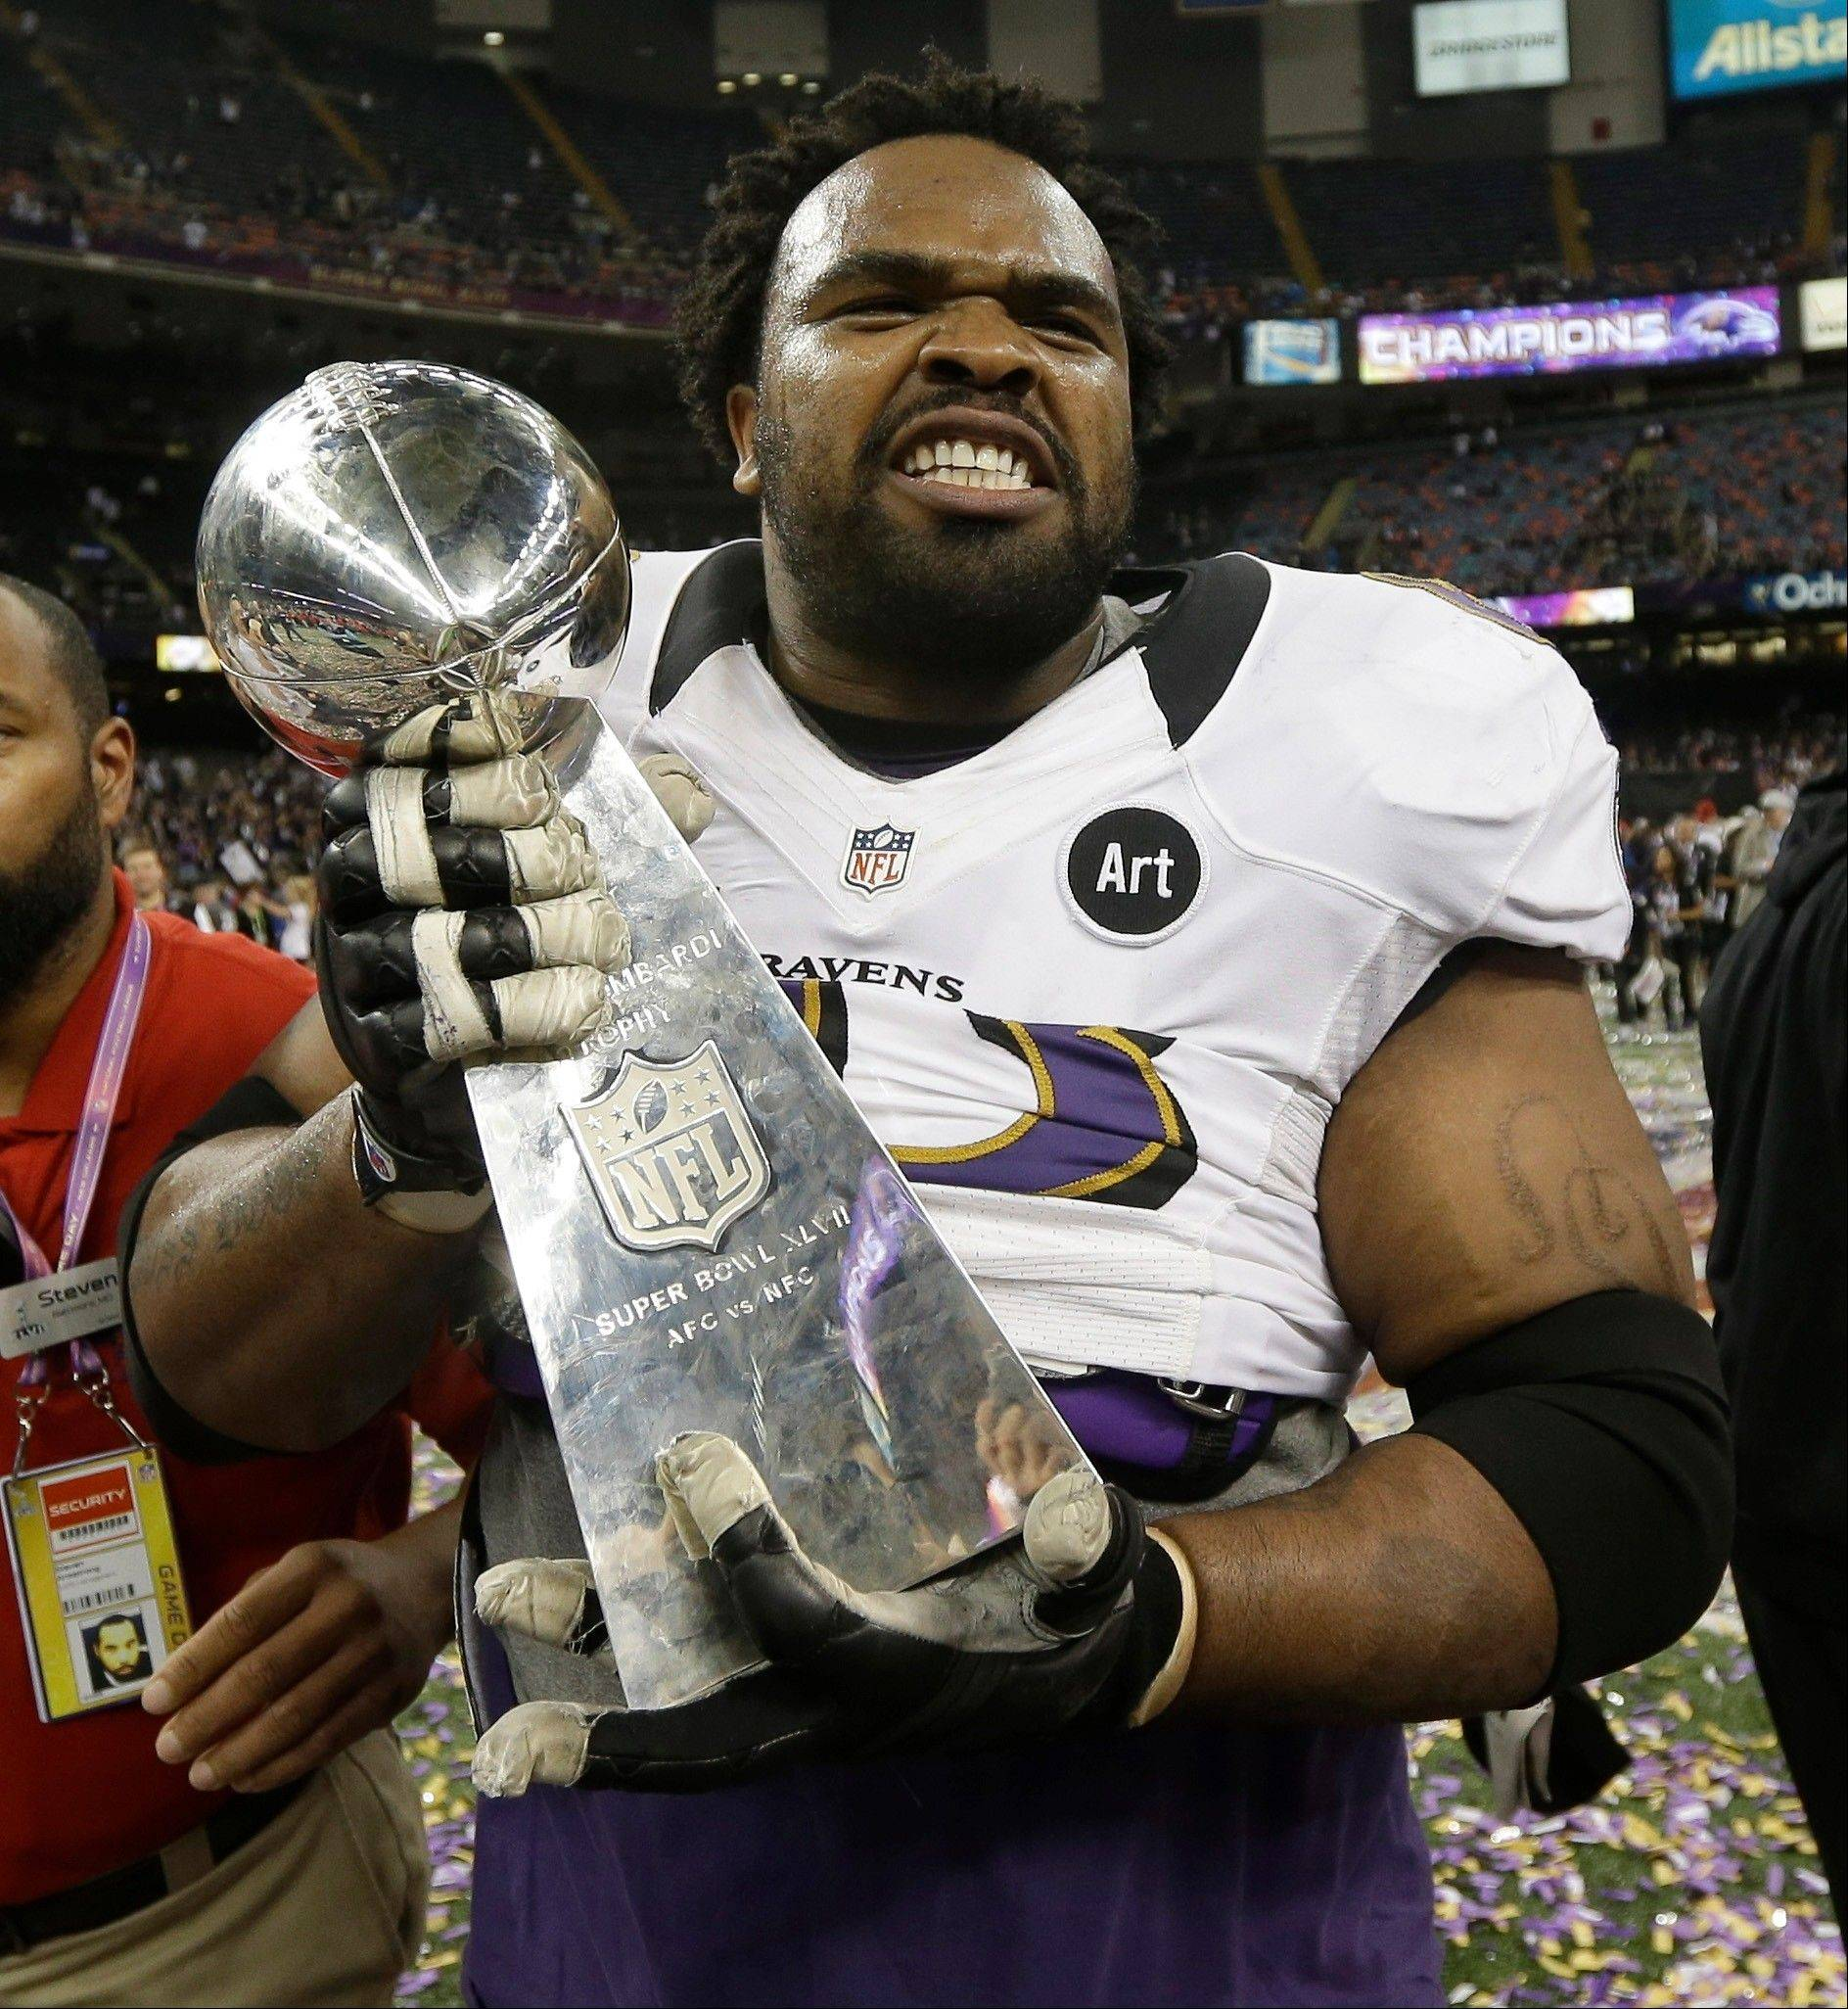 Baltimore Ravens offensive lineman Bobbie Williams walks off the field with the Vince Lombardi Trophy after their 34-31 win against the San Francisco 49ers in the NFL Super Bowl XLVII football game Sunday in New Orleans.